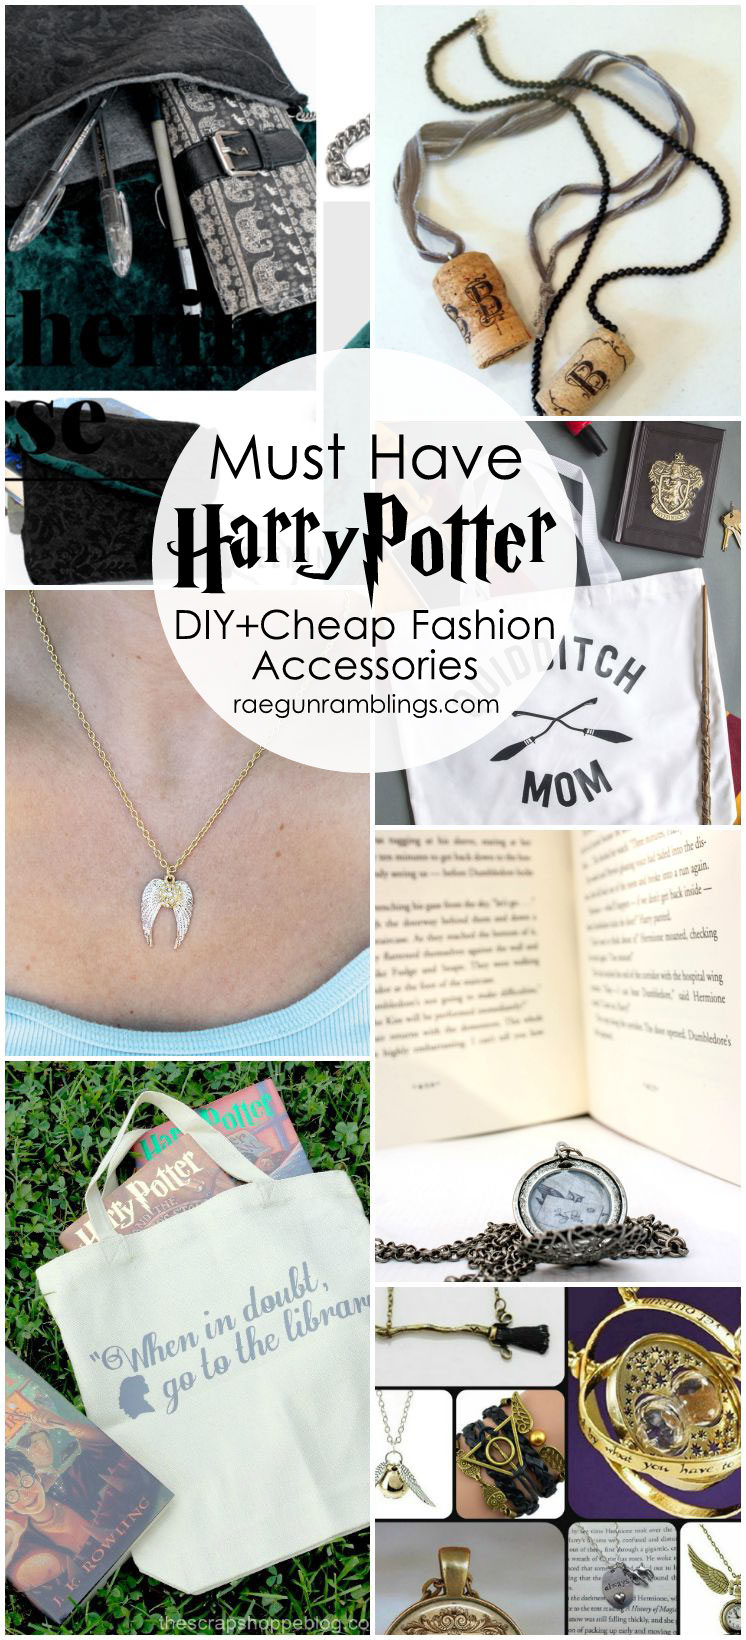 Super cute. Must make all these Harry Potter necklaces and bags. DIY tutorials